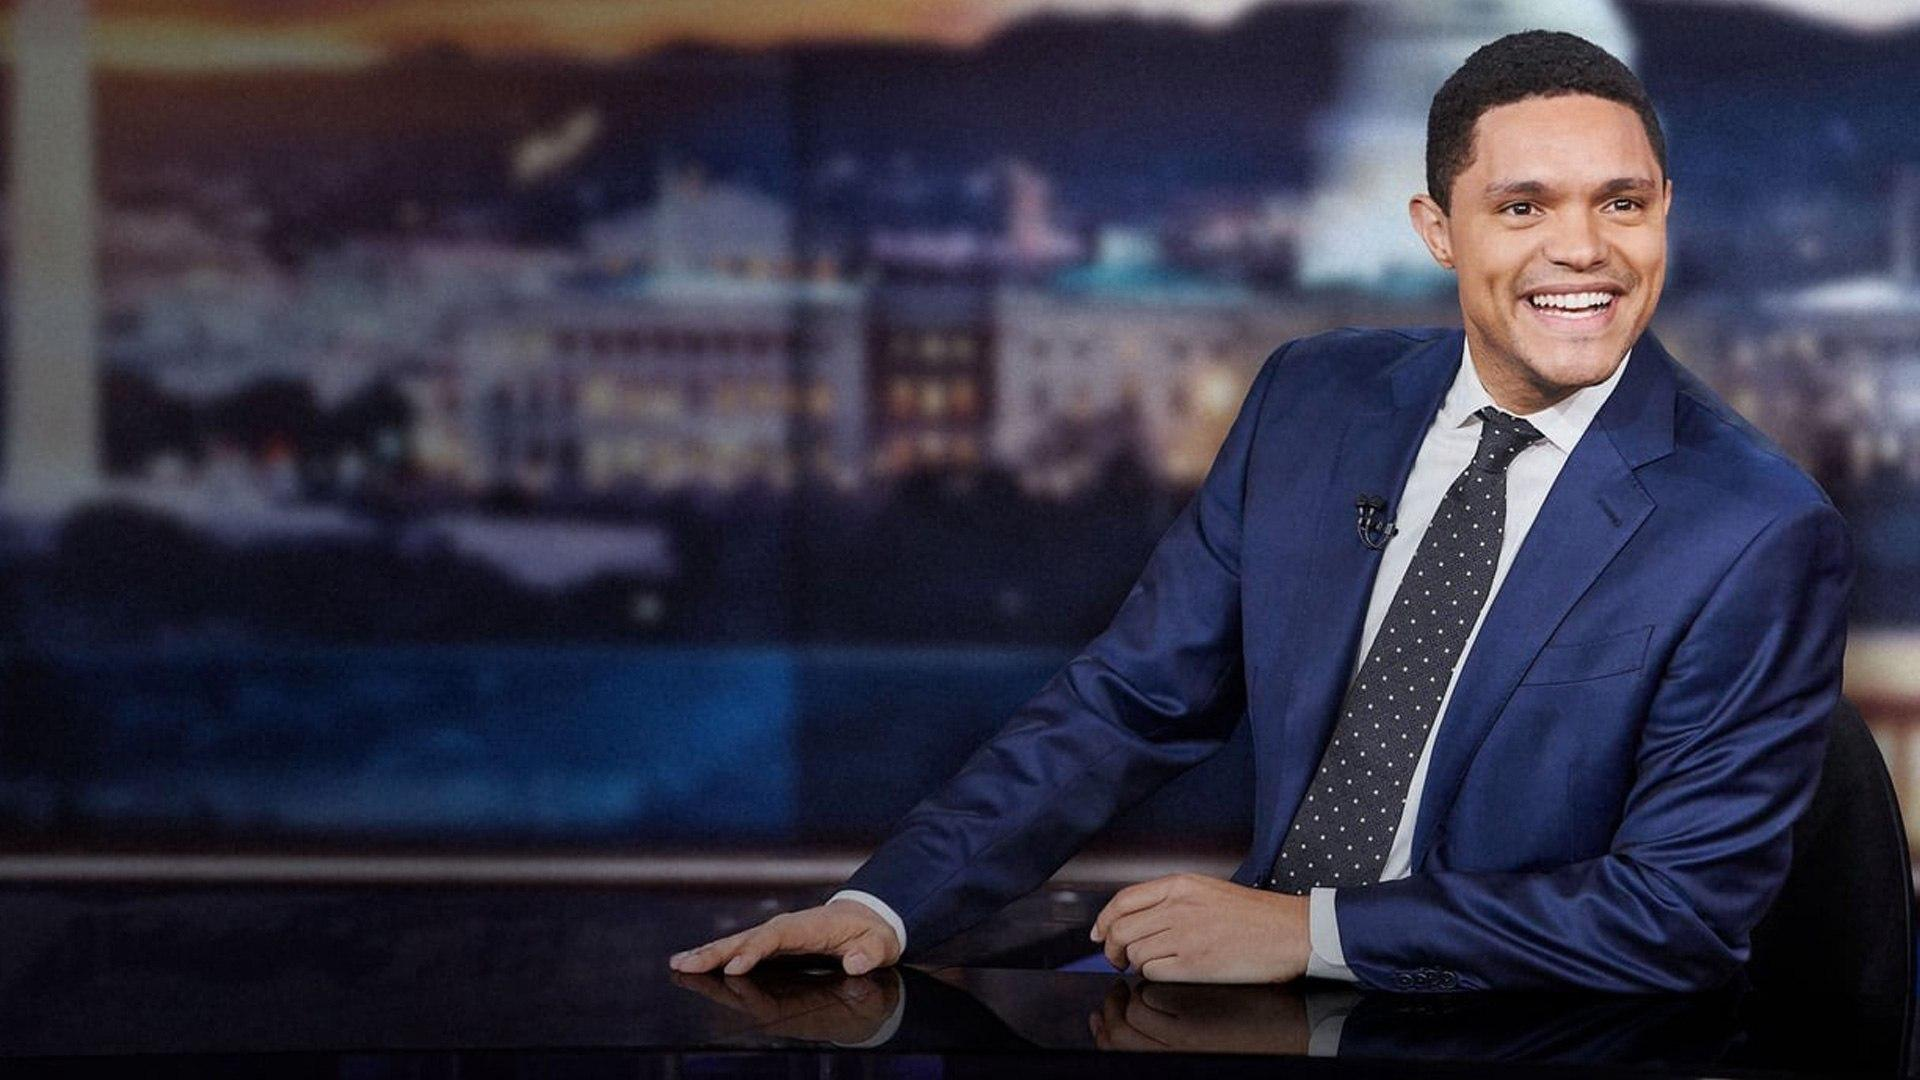 Comedy Central The Daily Show